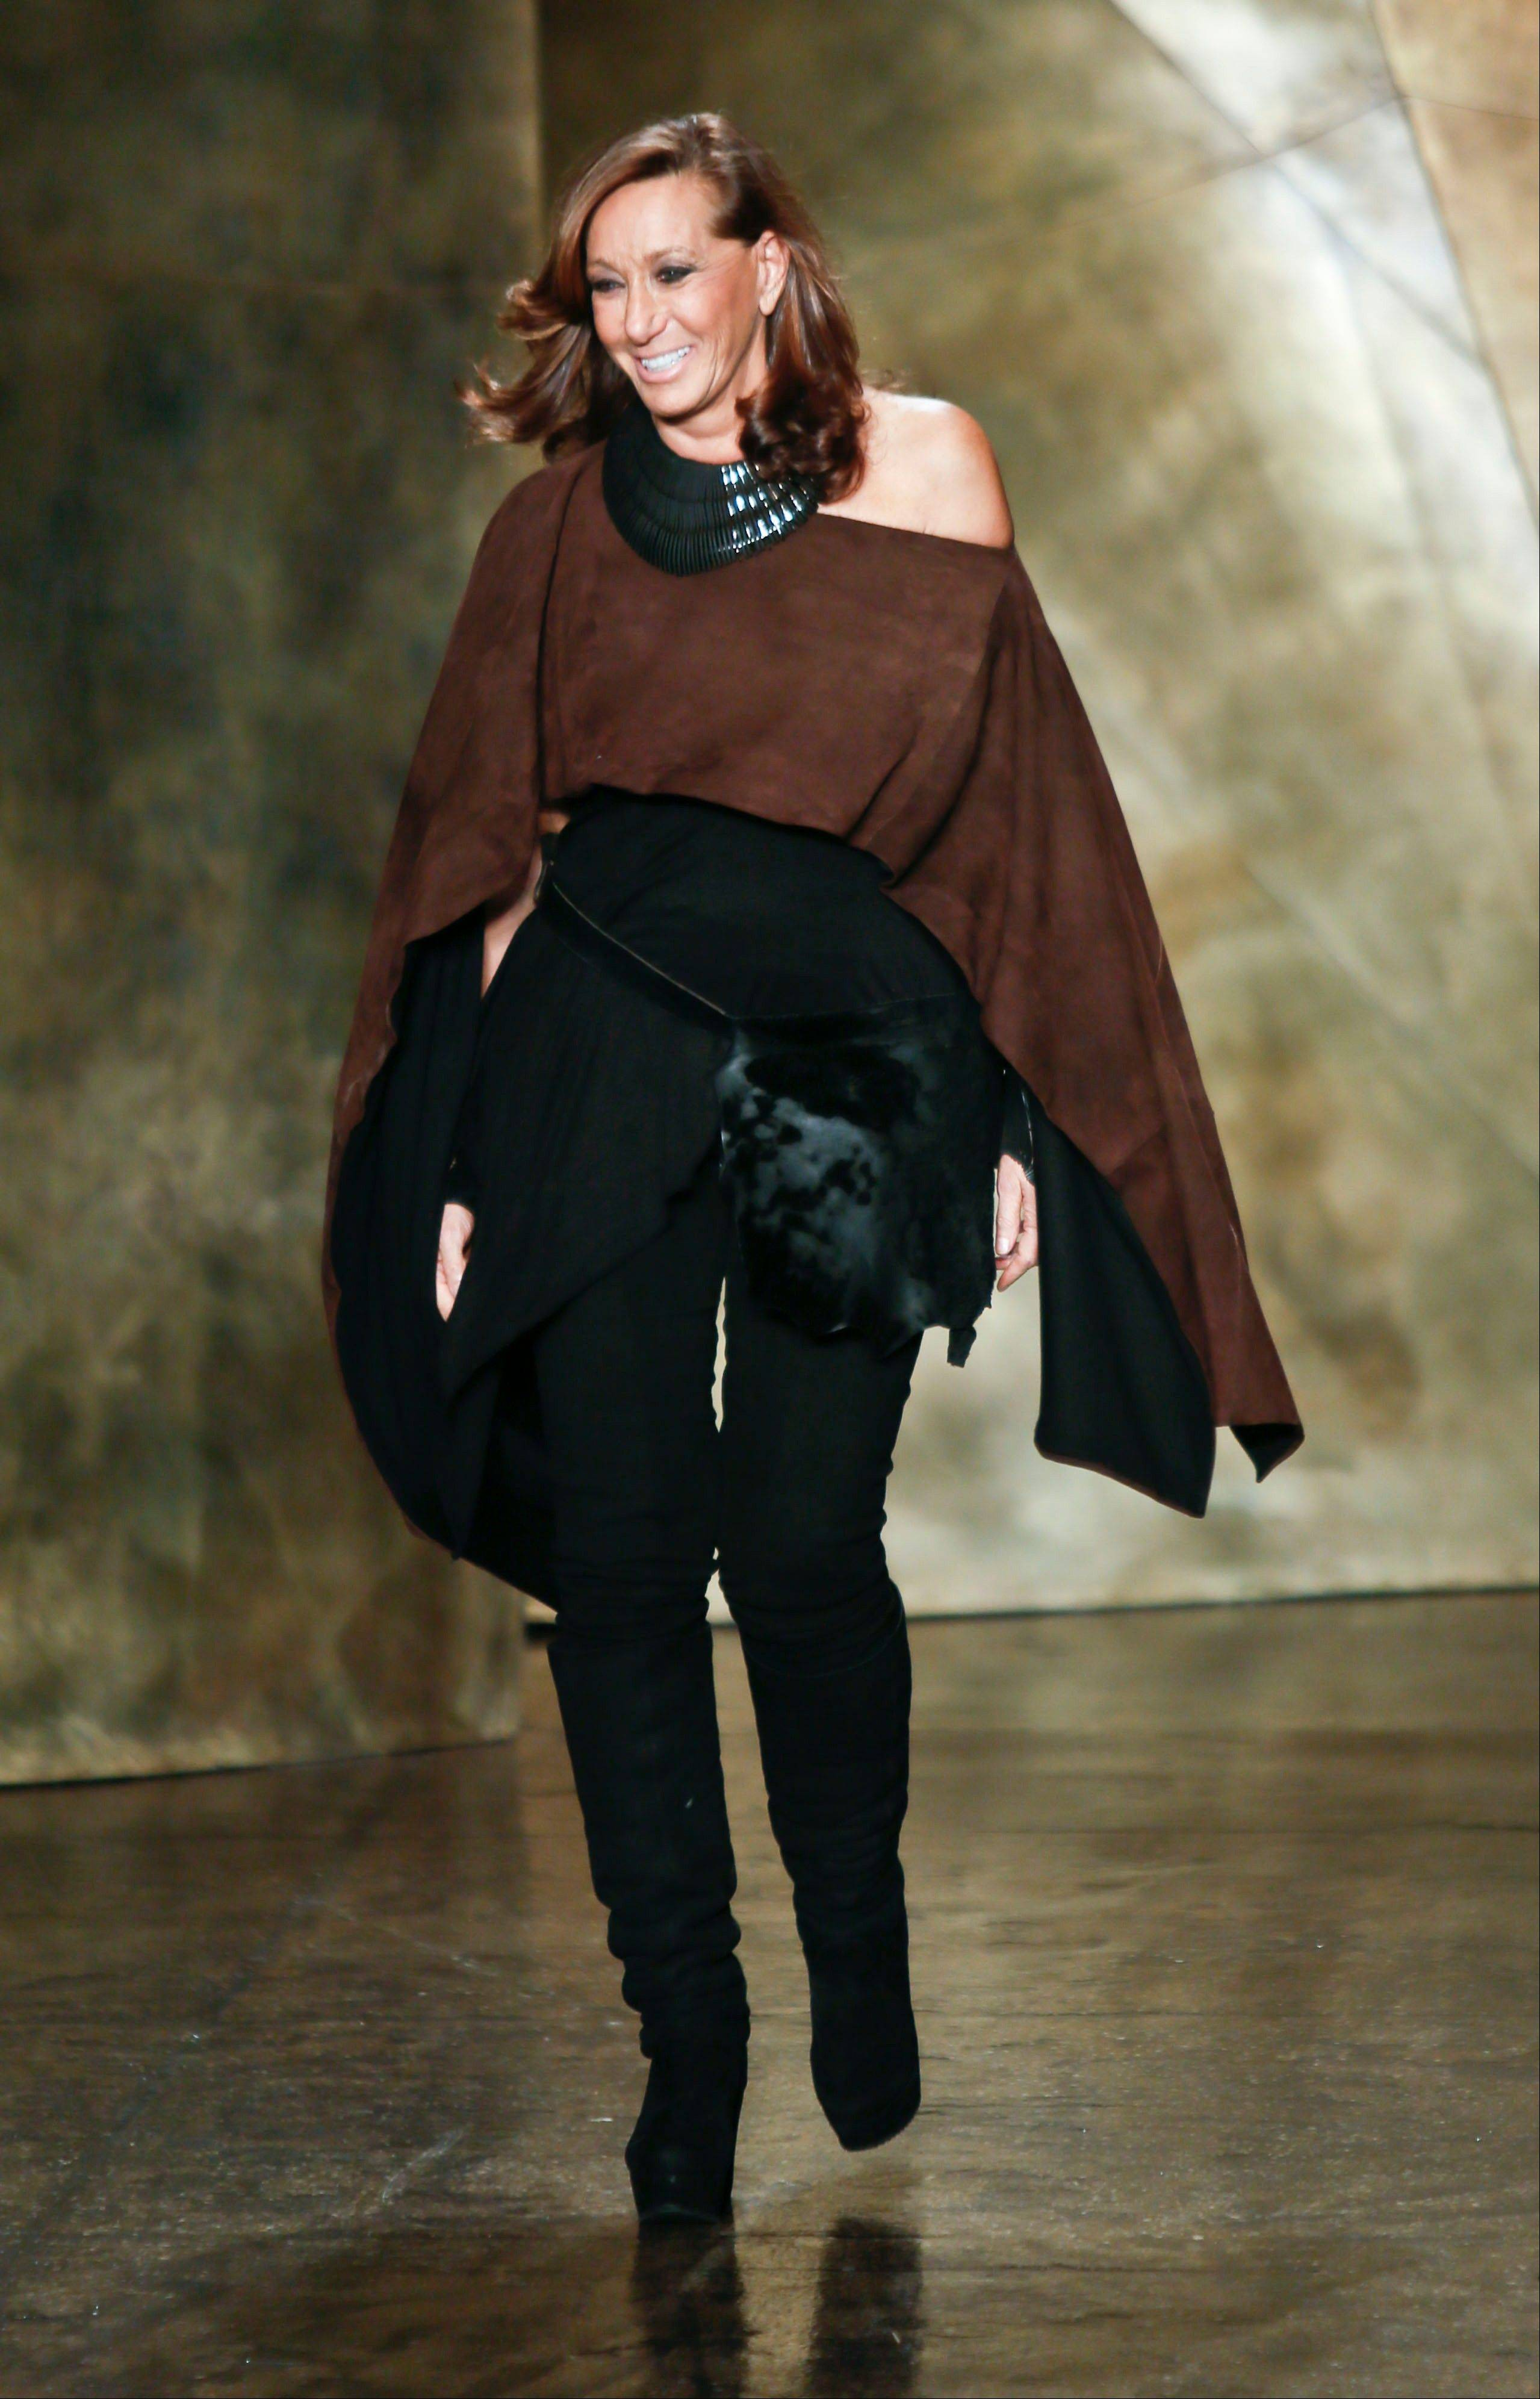 Fashion designer Donna Karan New York appears on the runway after showing her Fall 2013 collection on Monday in New York.